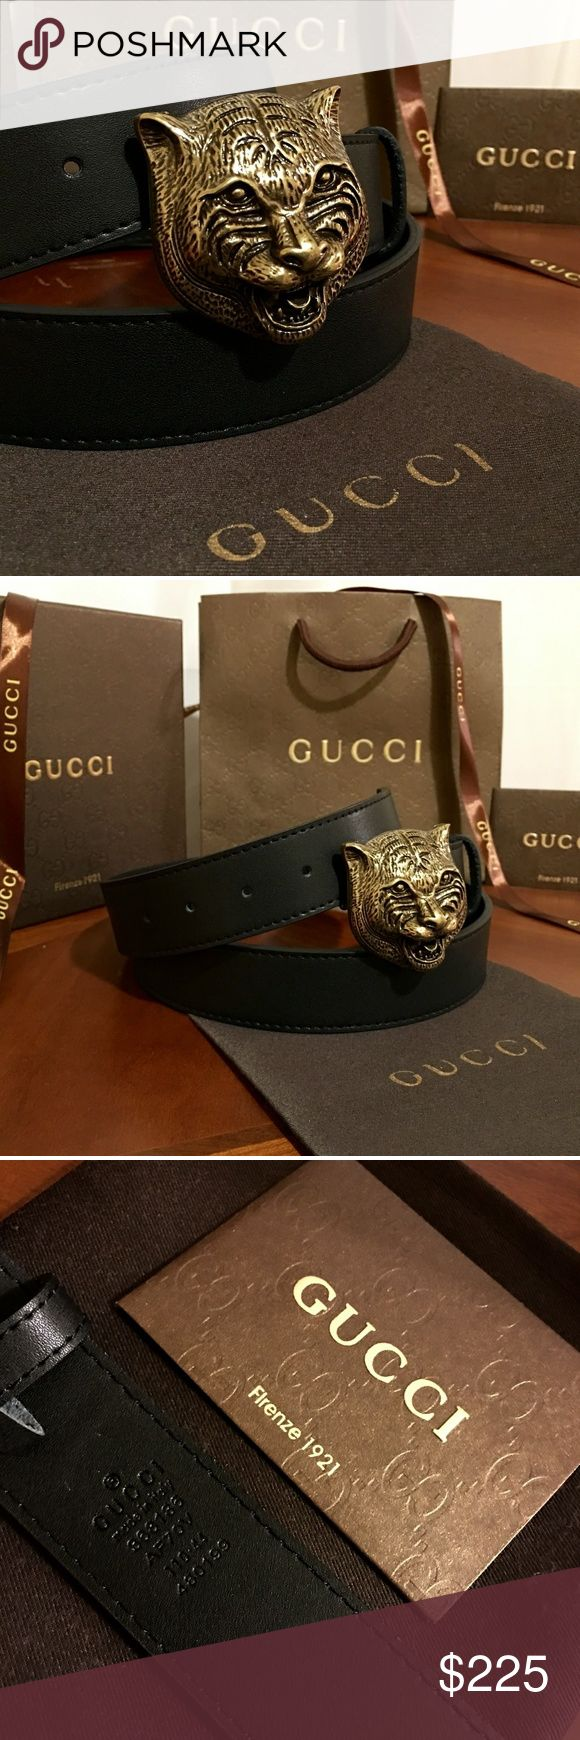 """Gucci Feline Belt!!! Gucci Feline Belt W/Antique Brass Hardware!!!  Brand New!!!  Unisex...For Man Or Woman!!!  Size Available - 30"""", 32"""", 34"""", 36"""", 38"""", 40"""", 42""""!!!  Includes Gucci Belt, Gift Box, Dust Bag, Ribbon, Etc!!!  Great Gift Idea!!!  Last Available!!!  Check My Listings For Other Great Items!!!               Ignore: Gucci gg monogram casual dress belts men's women's guccissma leather gold silver web tiger bee embossed panther wool cable knit blooms supreme print angry cat ufo…"""